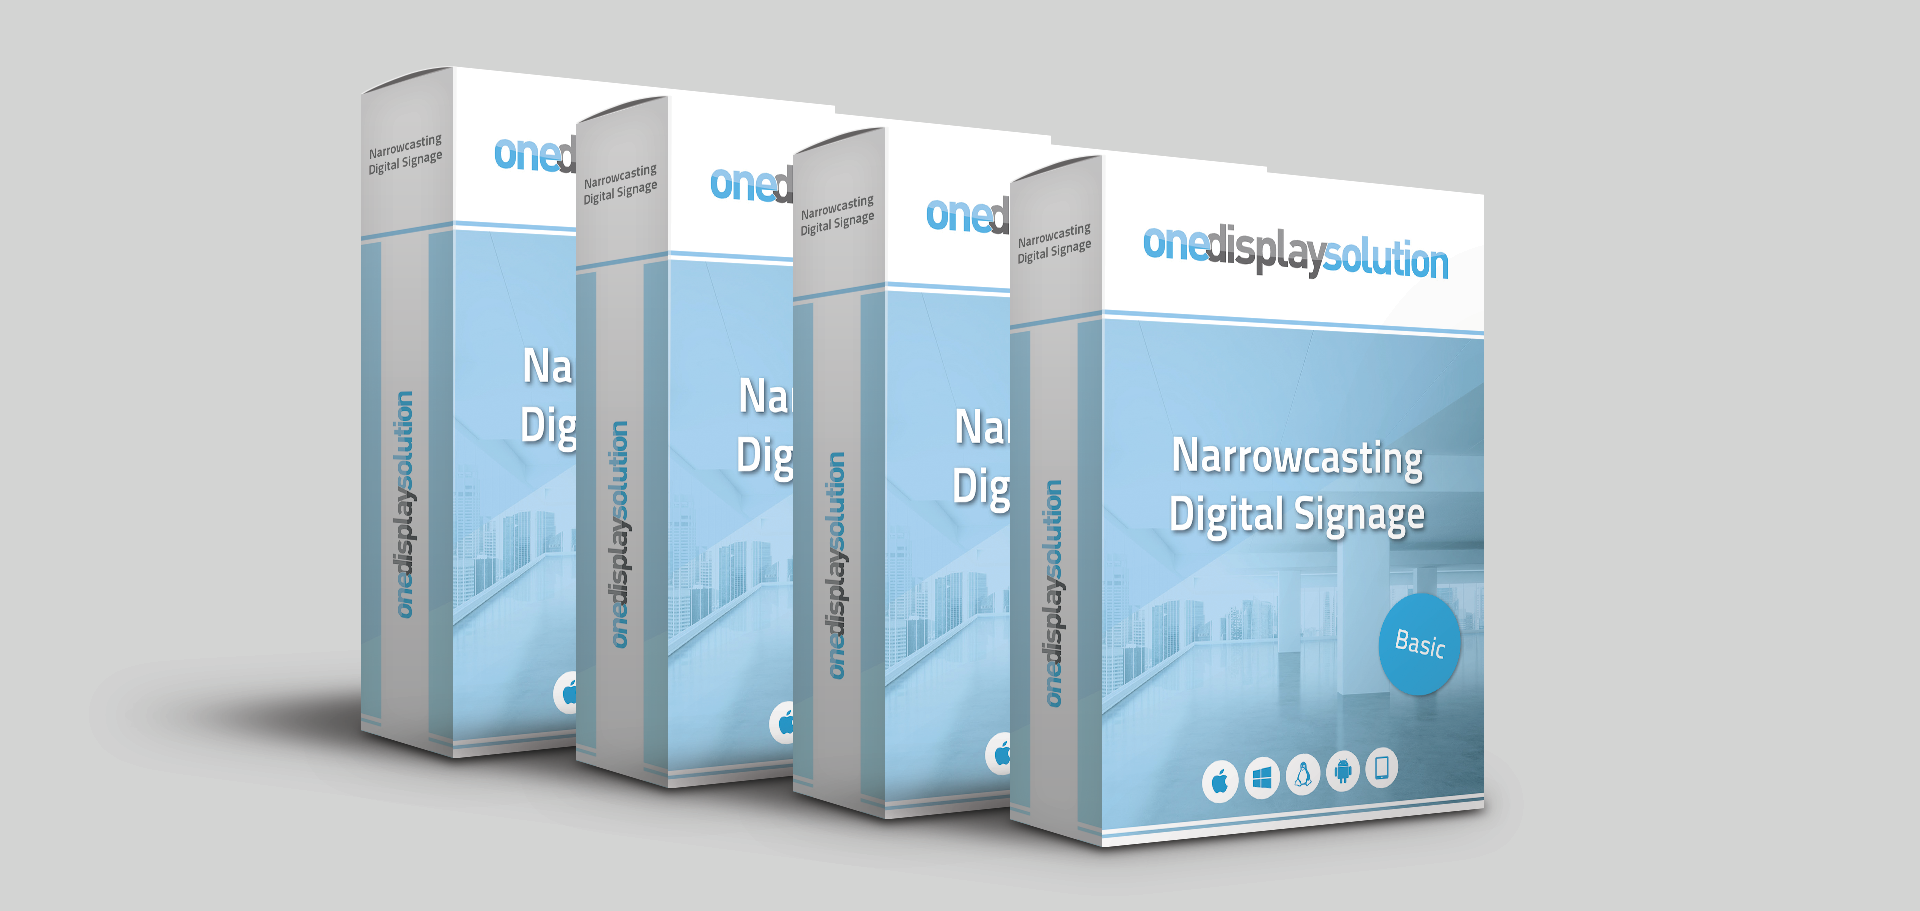 Narrowcasting-software-one-display-solution